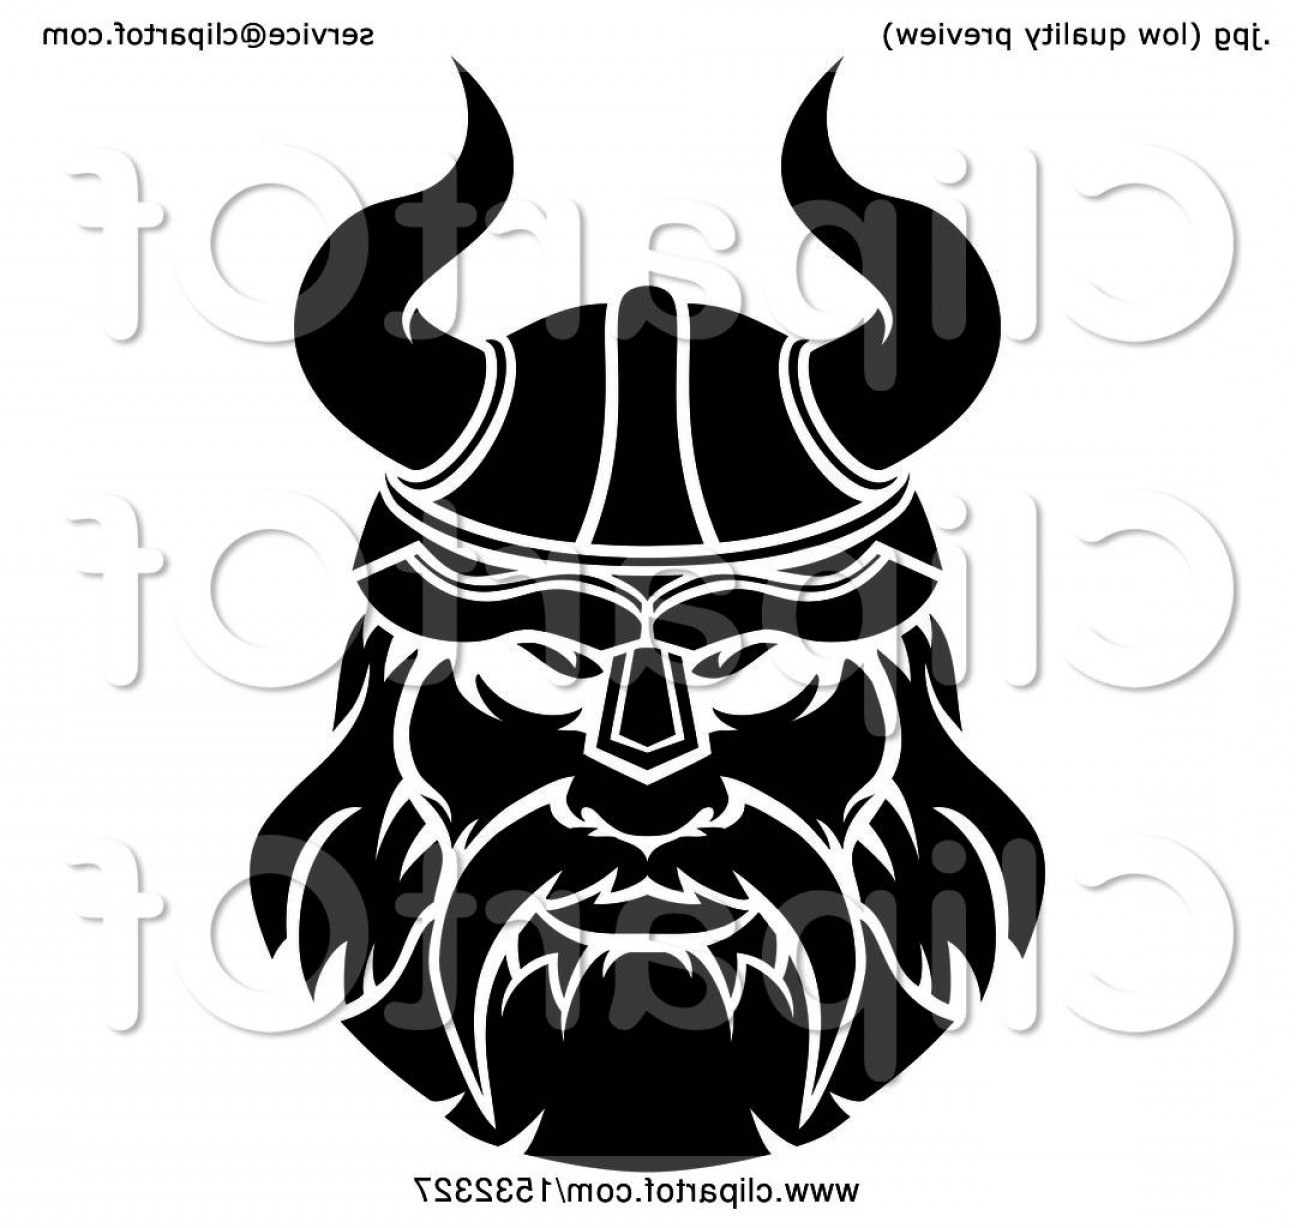 James Bond Vector Ai File: Black And White Male Viking Warrior Face